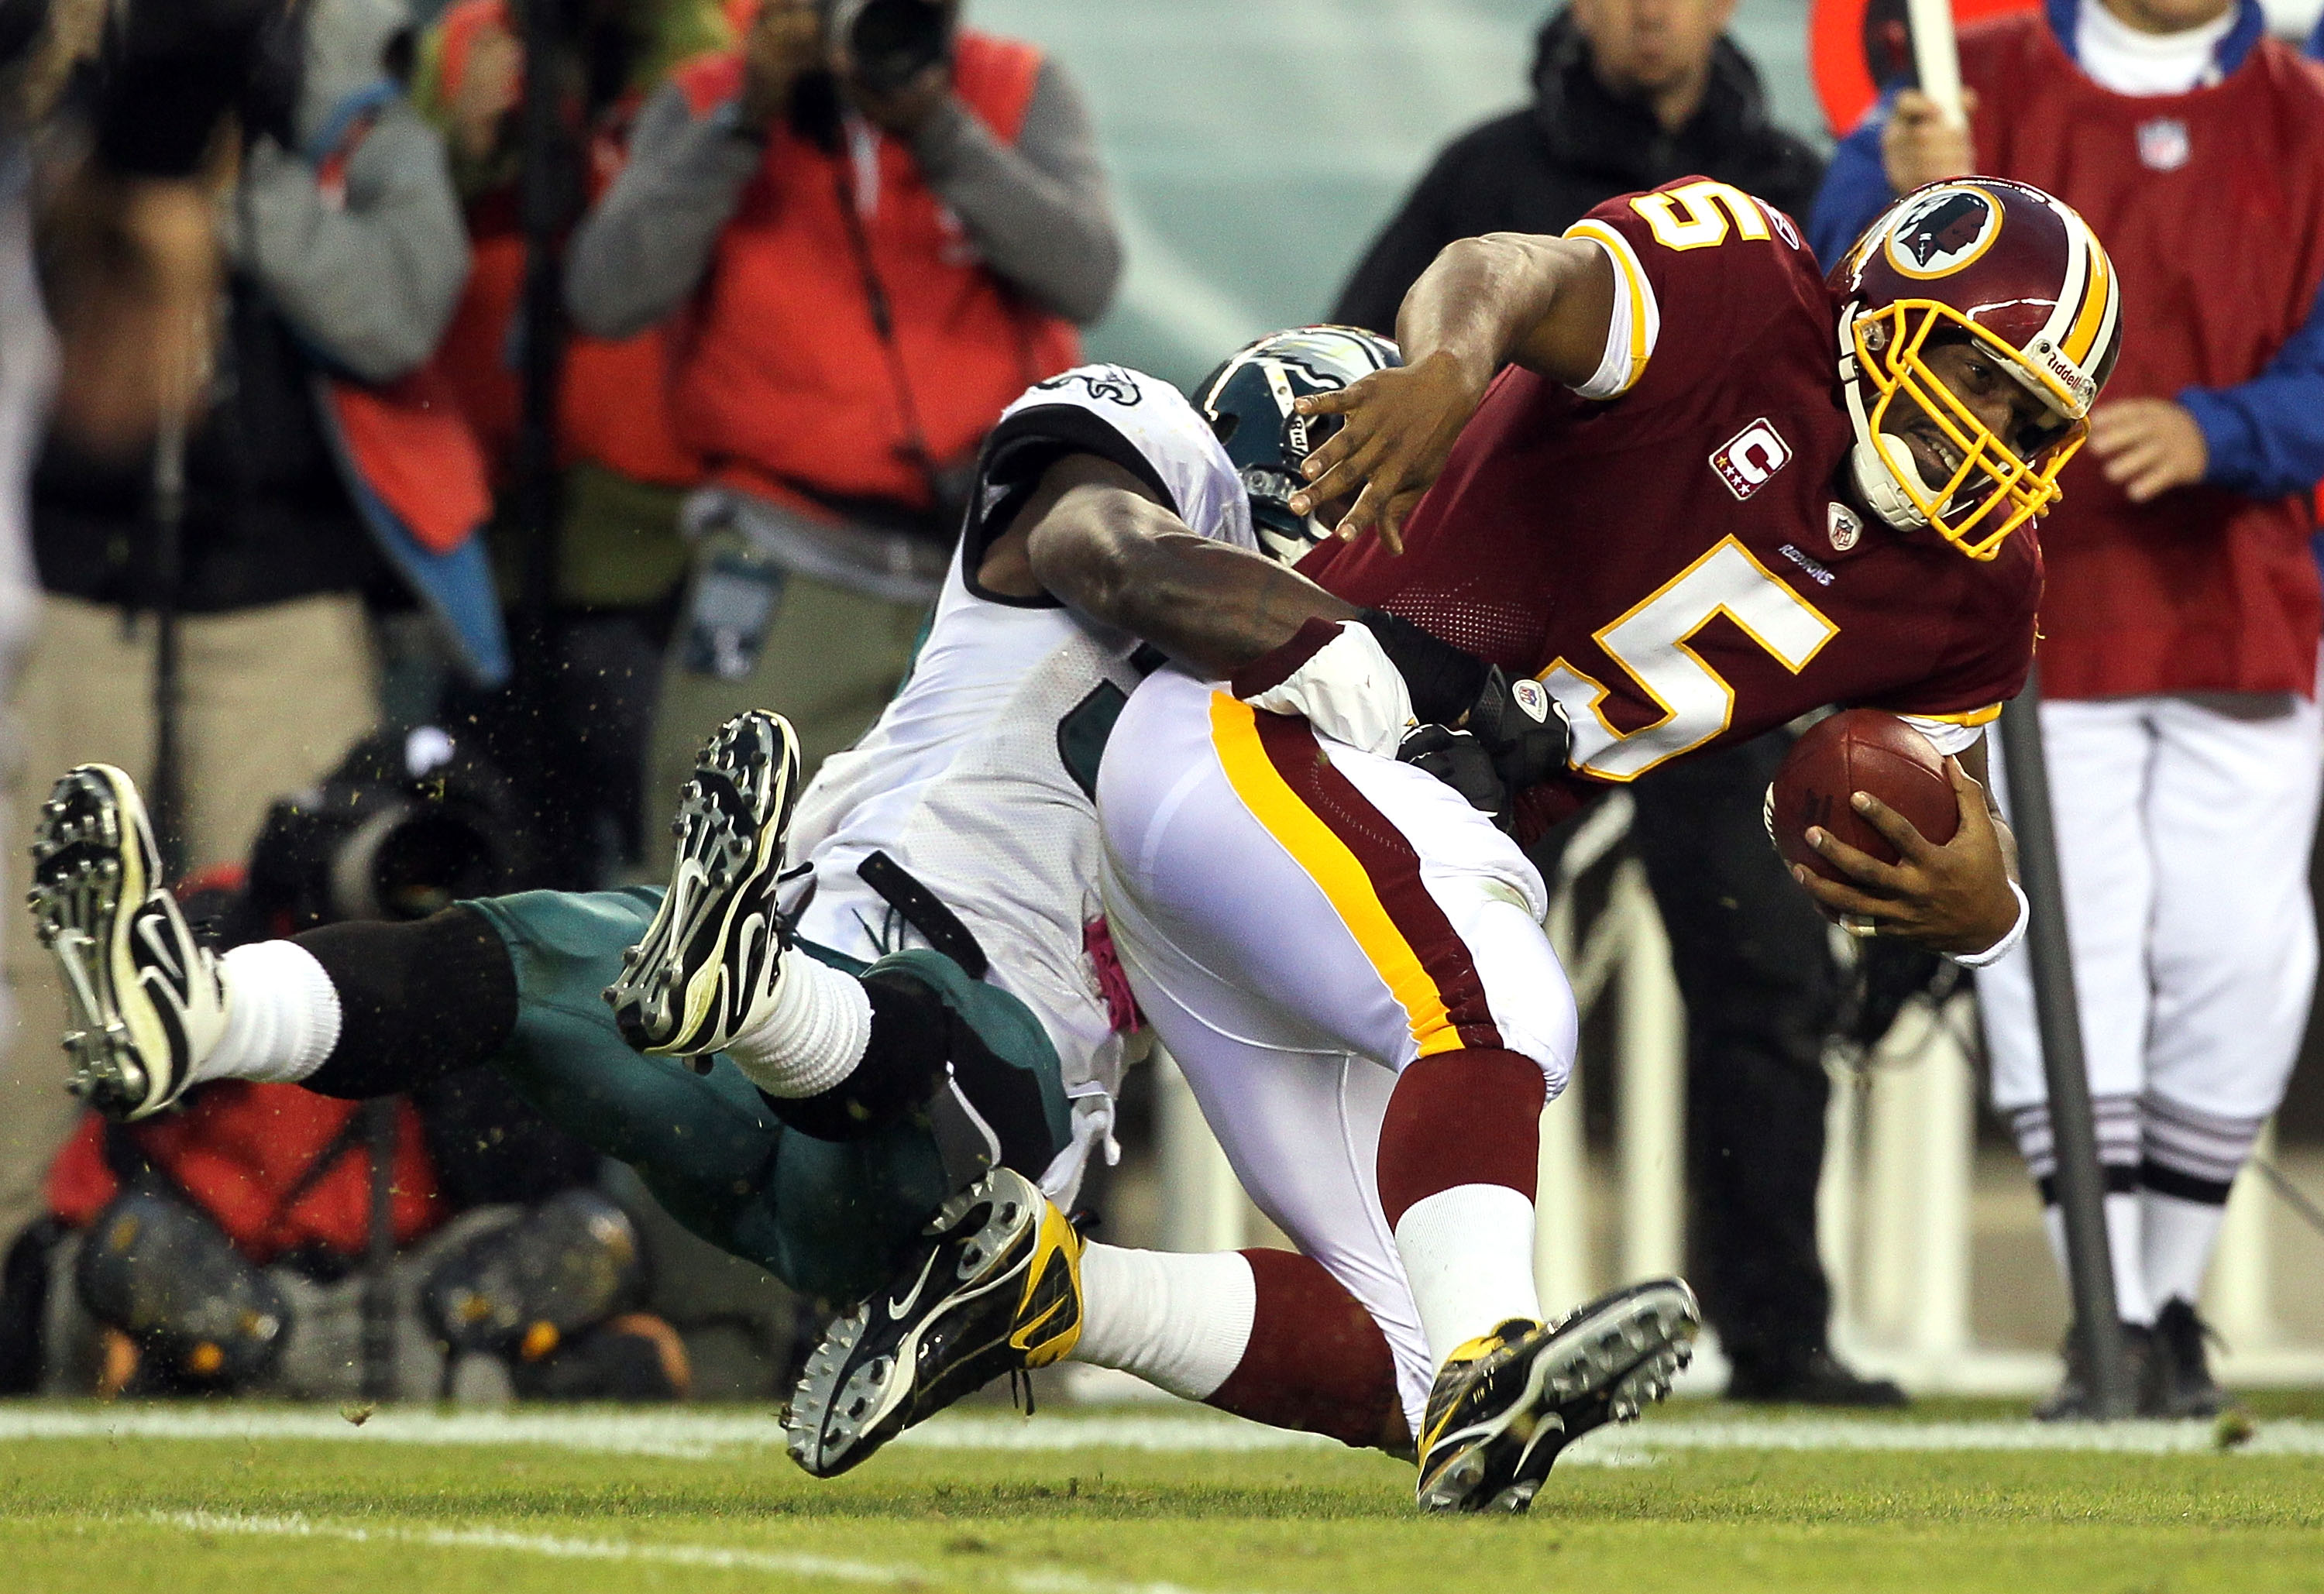 PHILADELPHIA - OCTOBER 03:  Donovan McNabb #5 of the Washington Redskins is sacked by Ernie Sims #50 of the Philadelphia Eagles on October 3, 2010 at Lincoln Financial Field in Philadelphia, Pennsylvania. The Redskins defeated the Eagles 17-12.  (Photo by